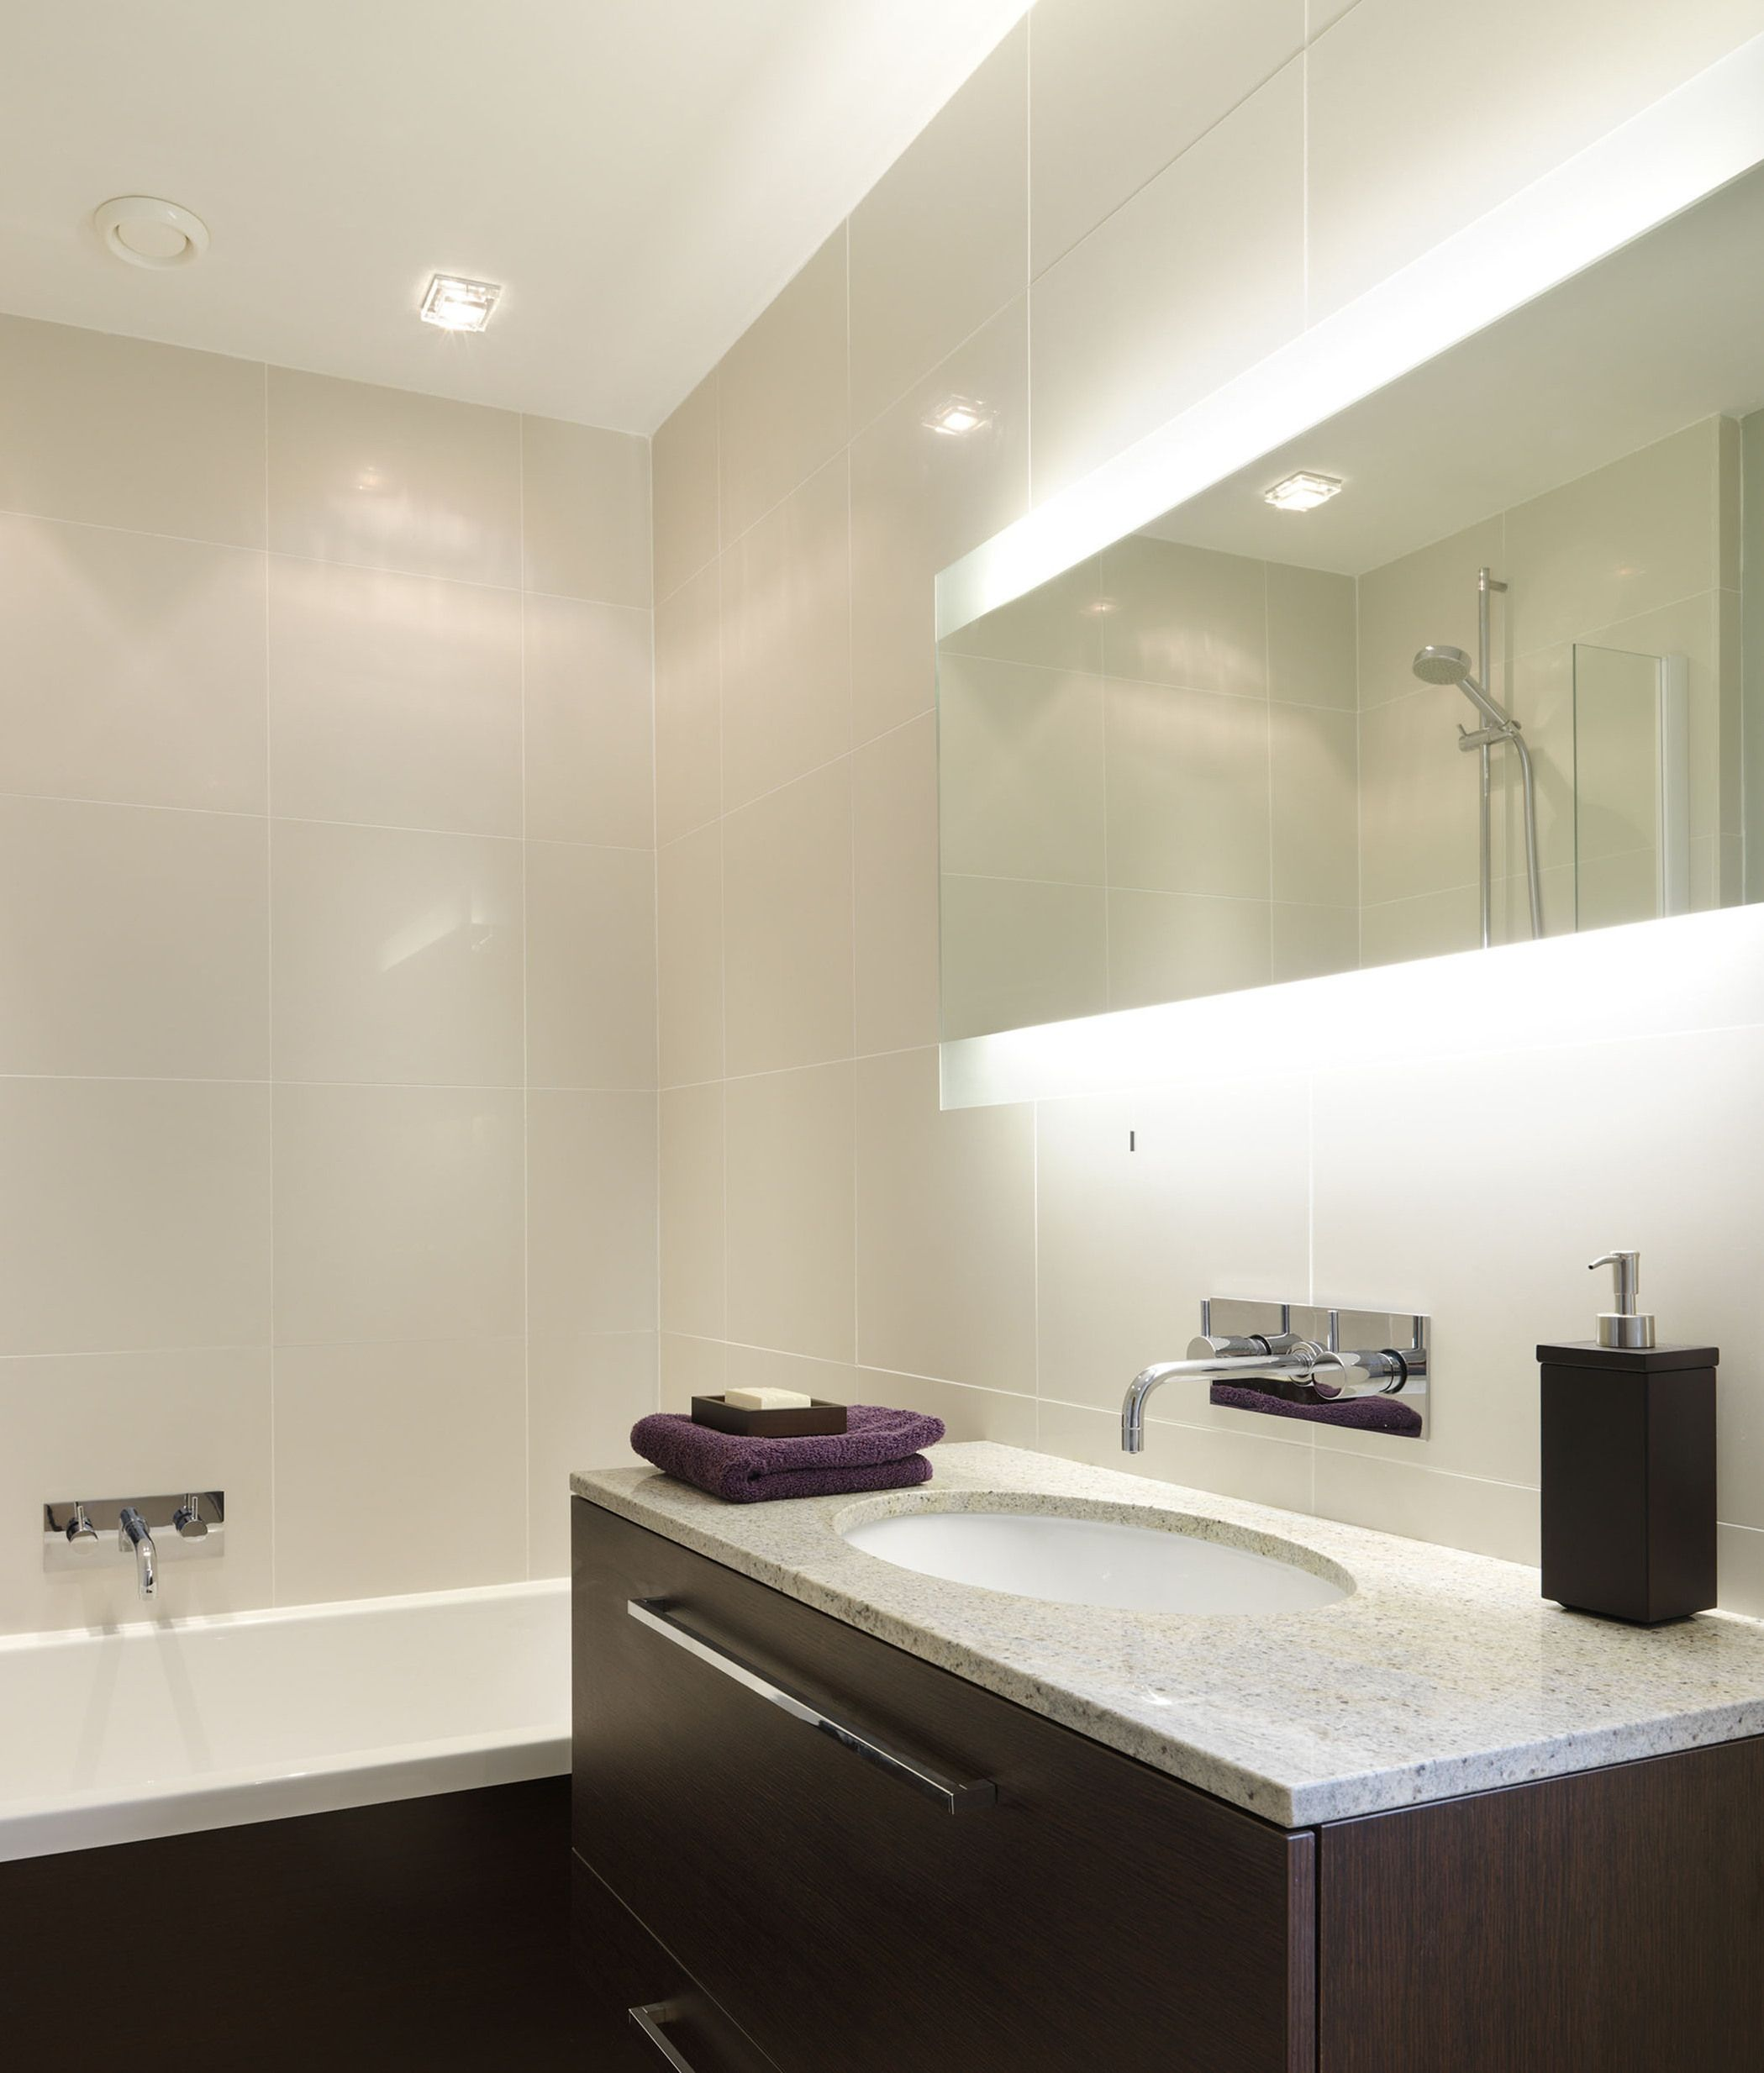 If You Have A Wide Sink You Need A Wide Mirror This Looks Wonderful When Lit And You Best Bathroom Lighting Bathroom Lighting Design Modern Bathroom Lighting